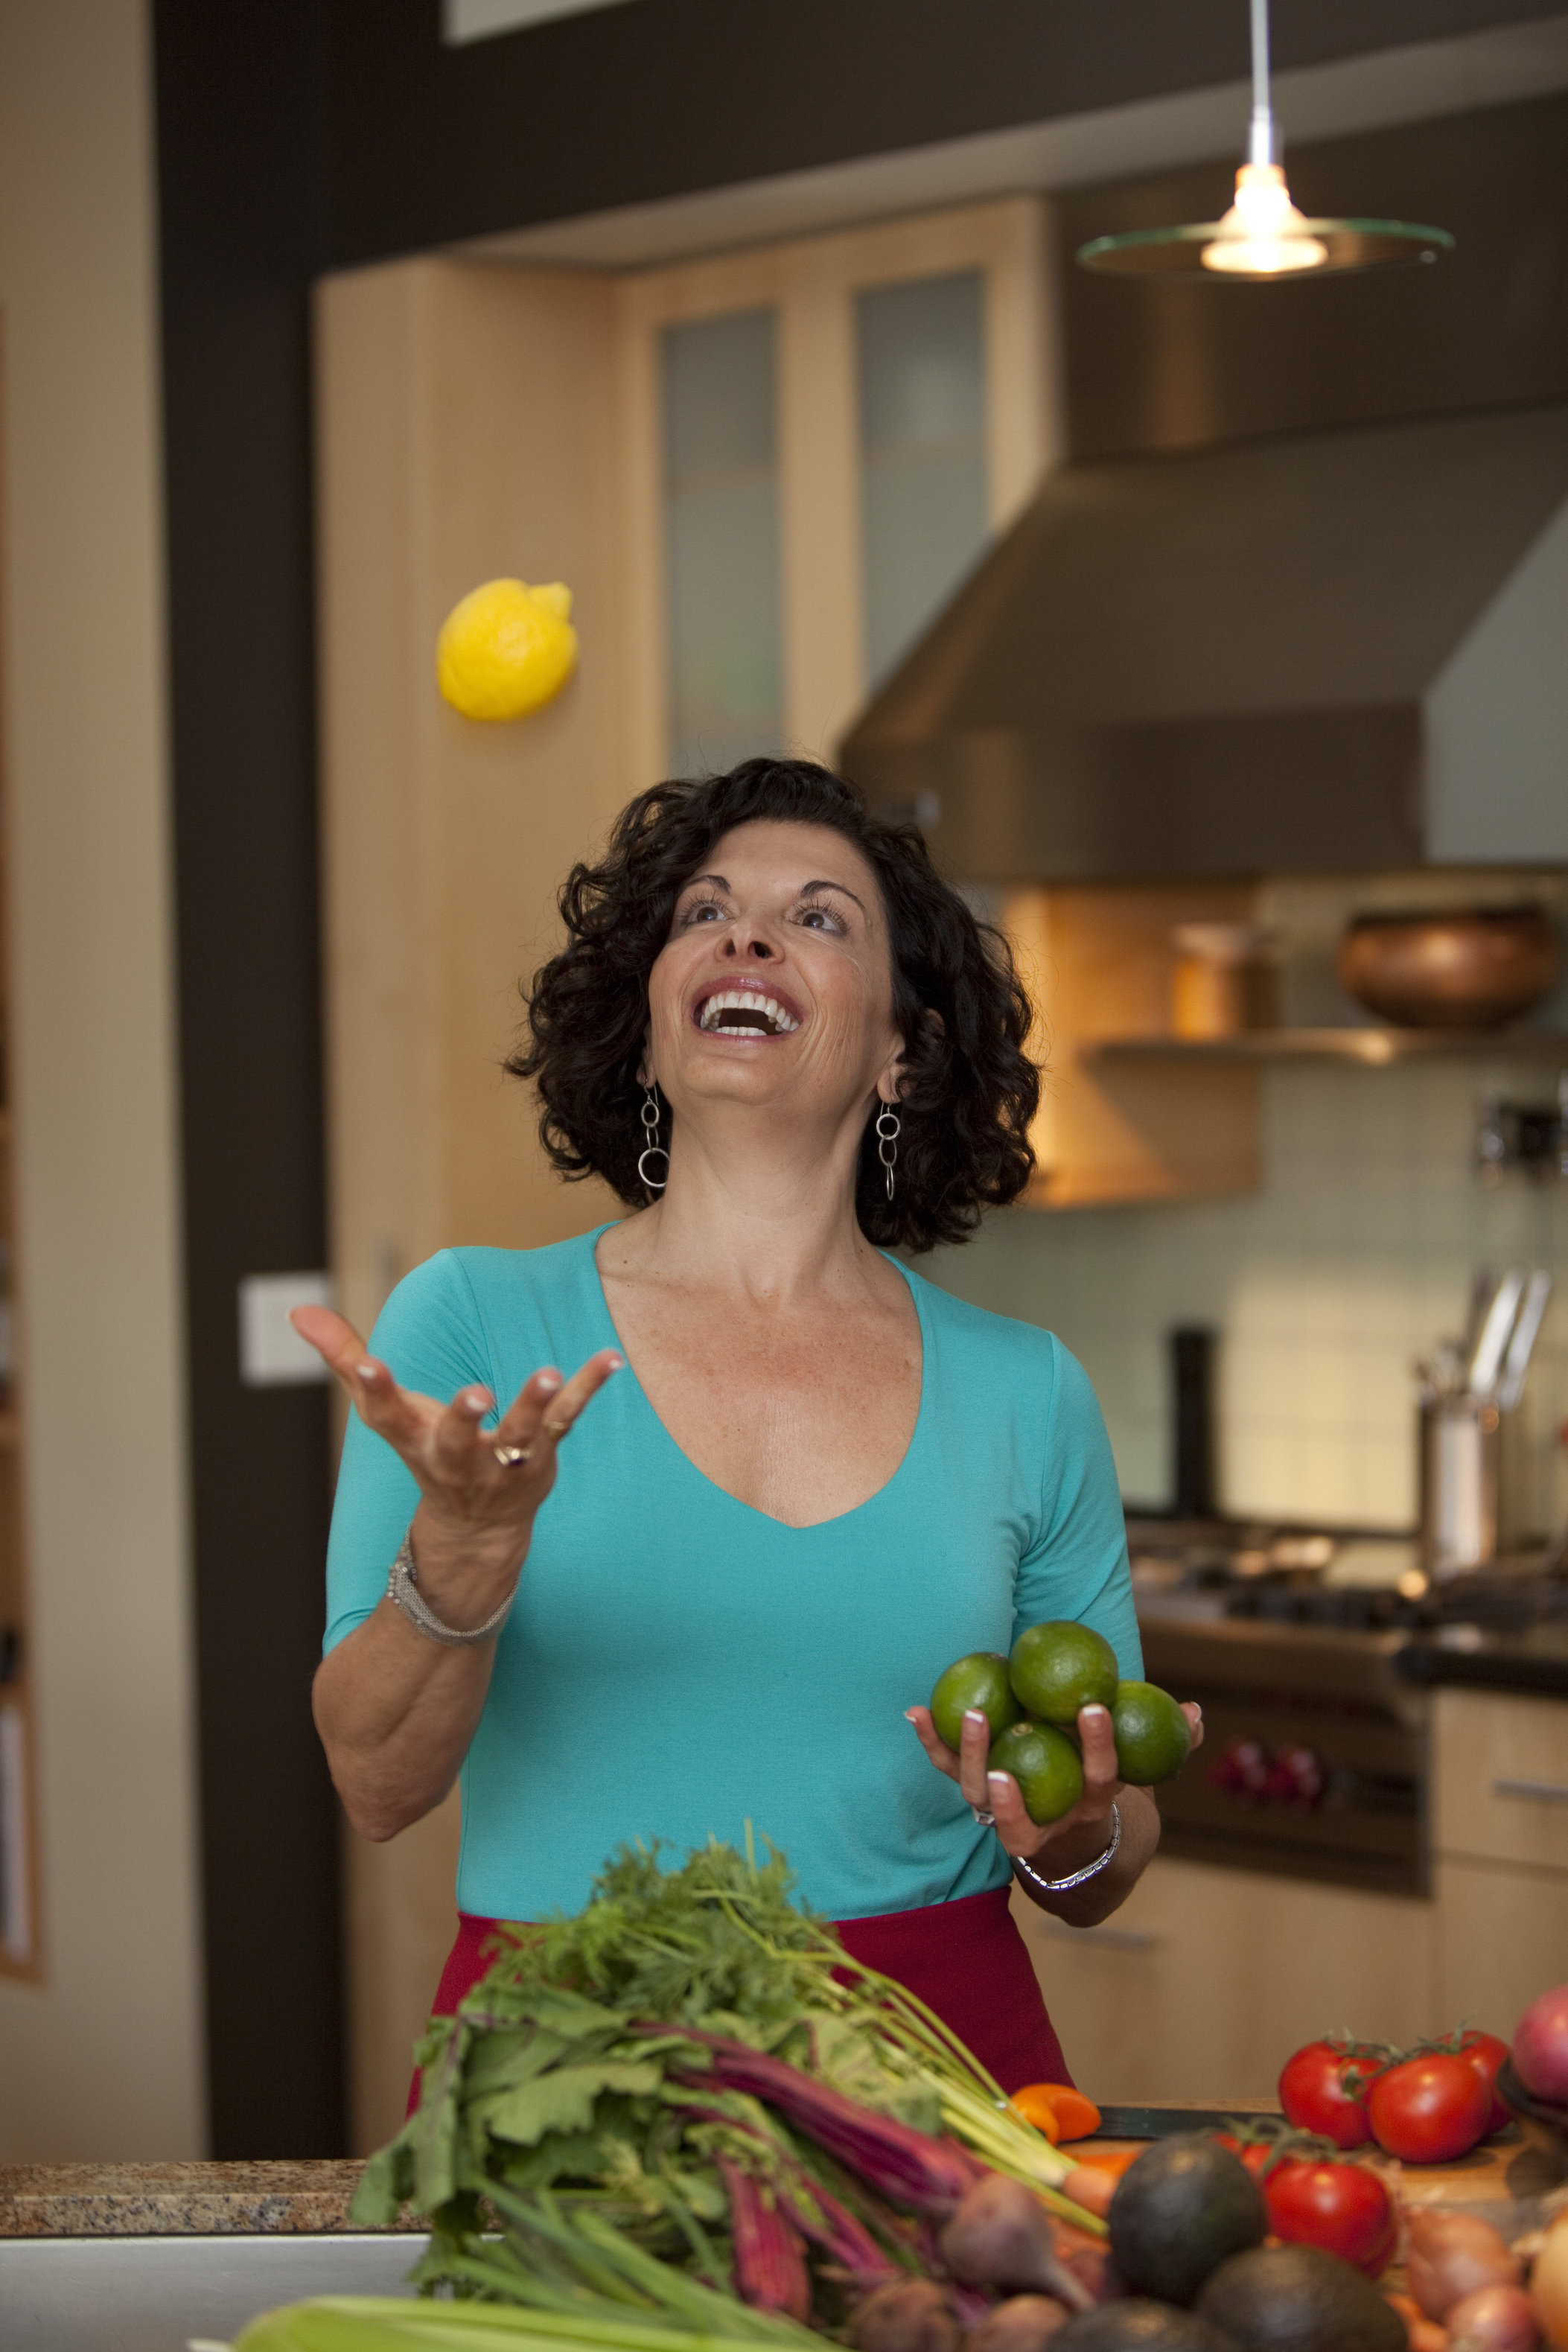 a woman tossing a lemon into the air in a kitchen setting, she is joyful